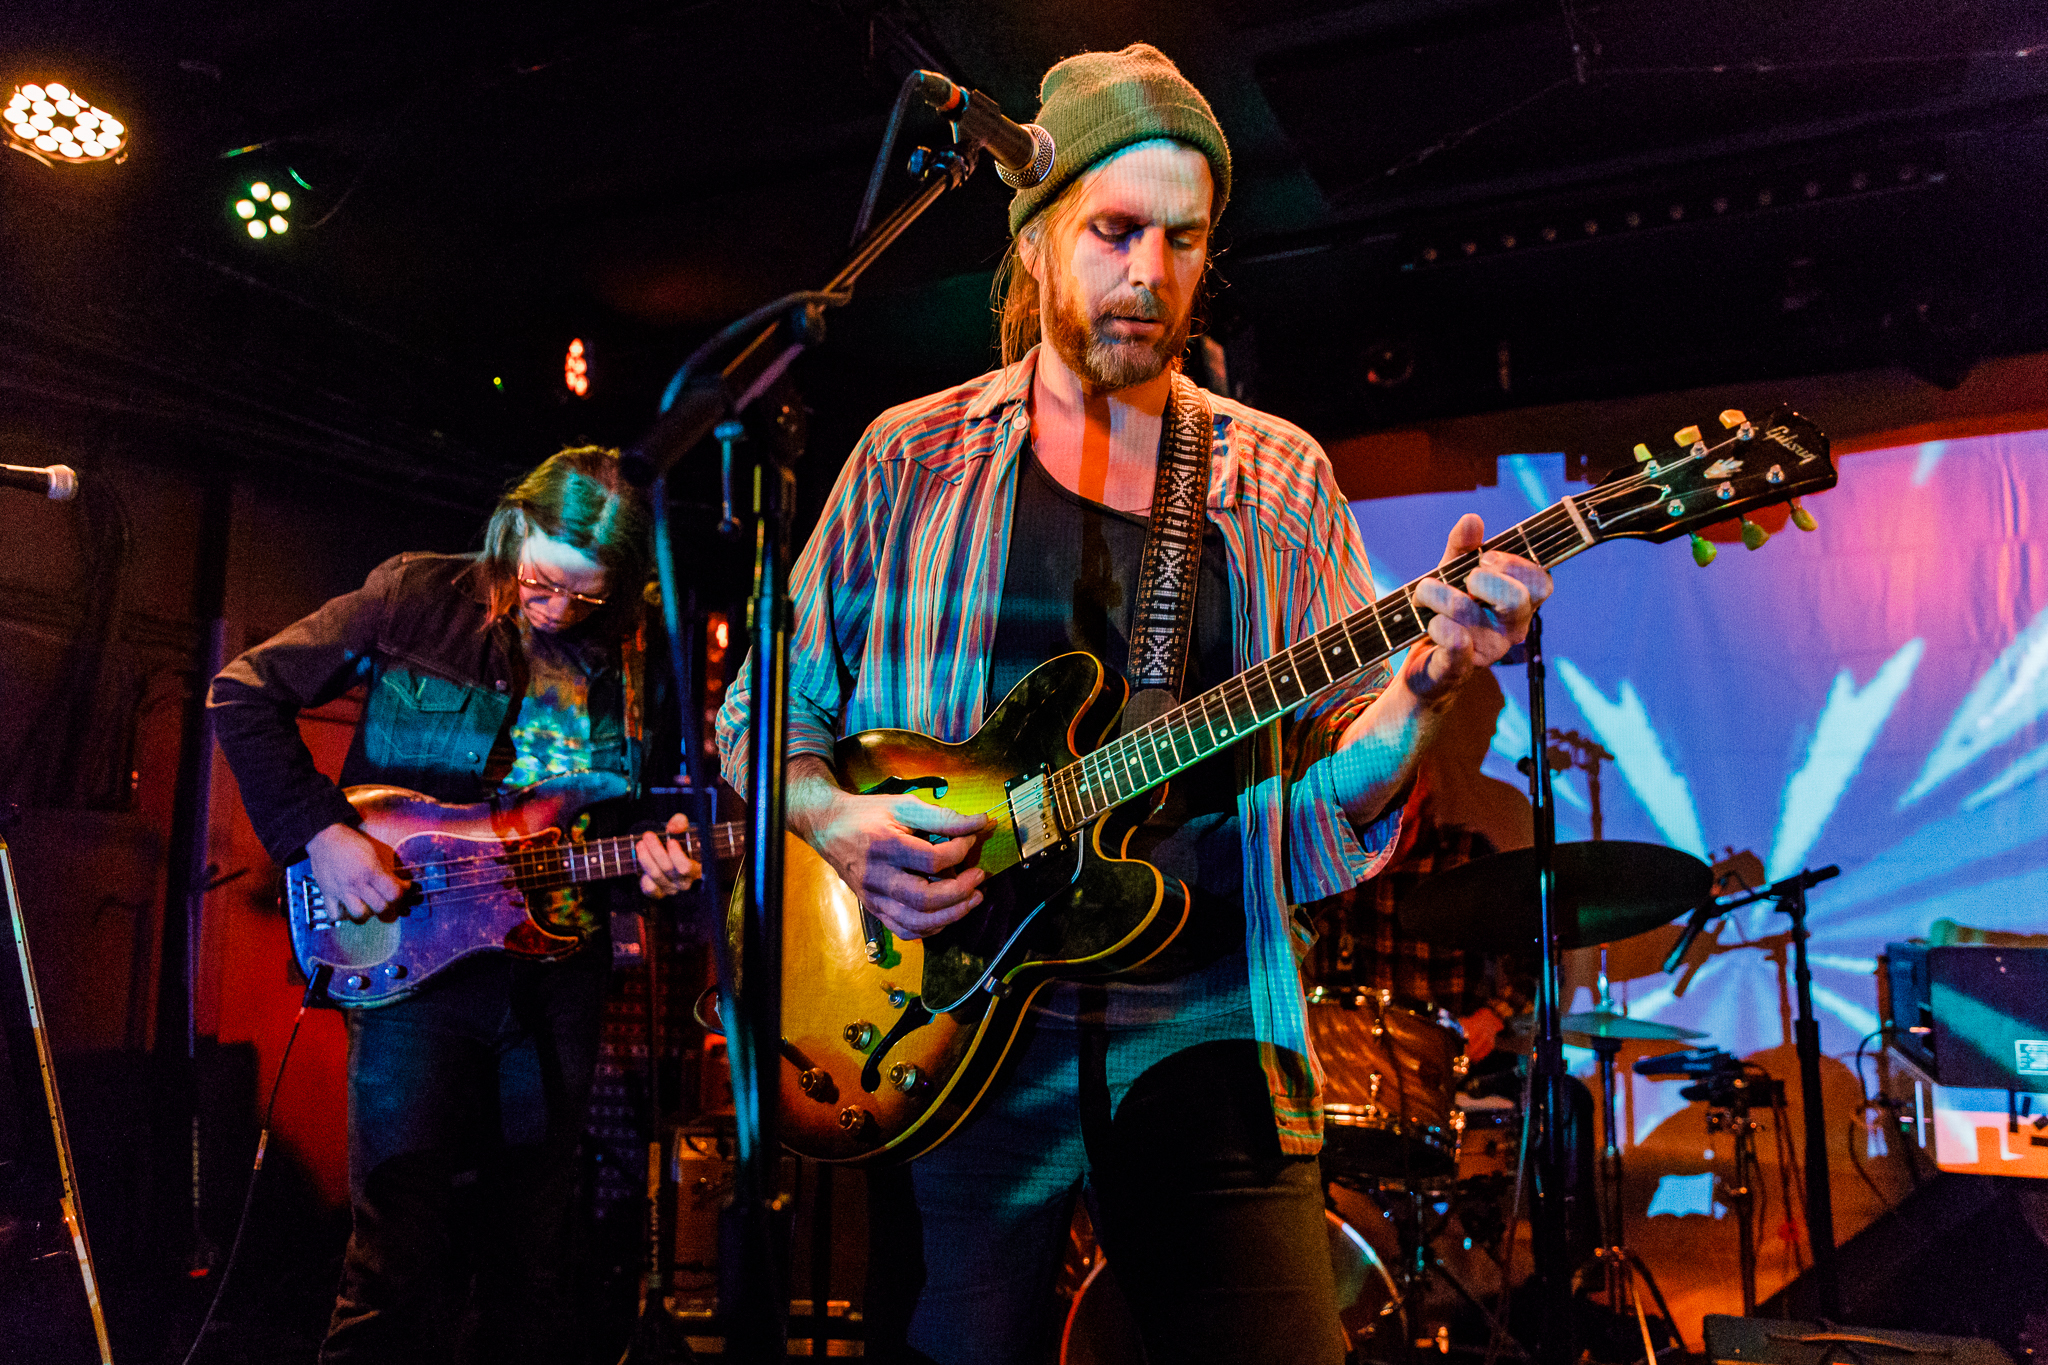 Jonathan Wilson performing at the Rock and Roll Hotel in Washington, DC - 3/8/2018 (photo by Matt Condon / @arcane93)